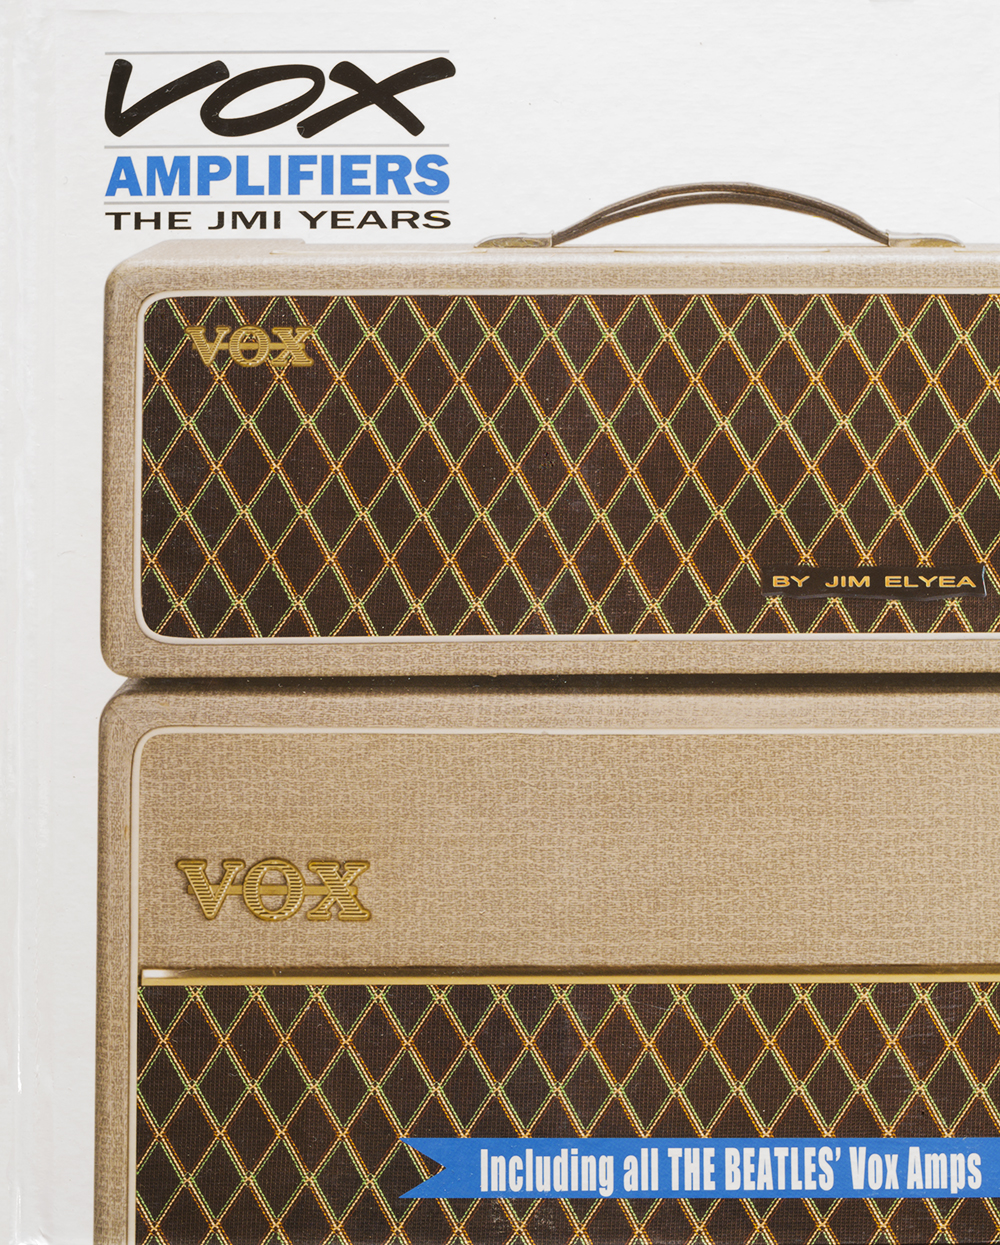 the vox amplifier book by jim elyea